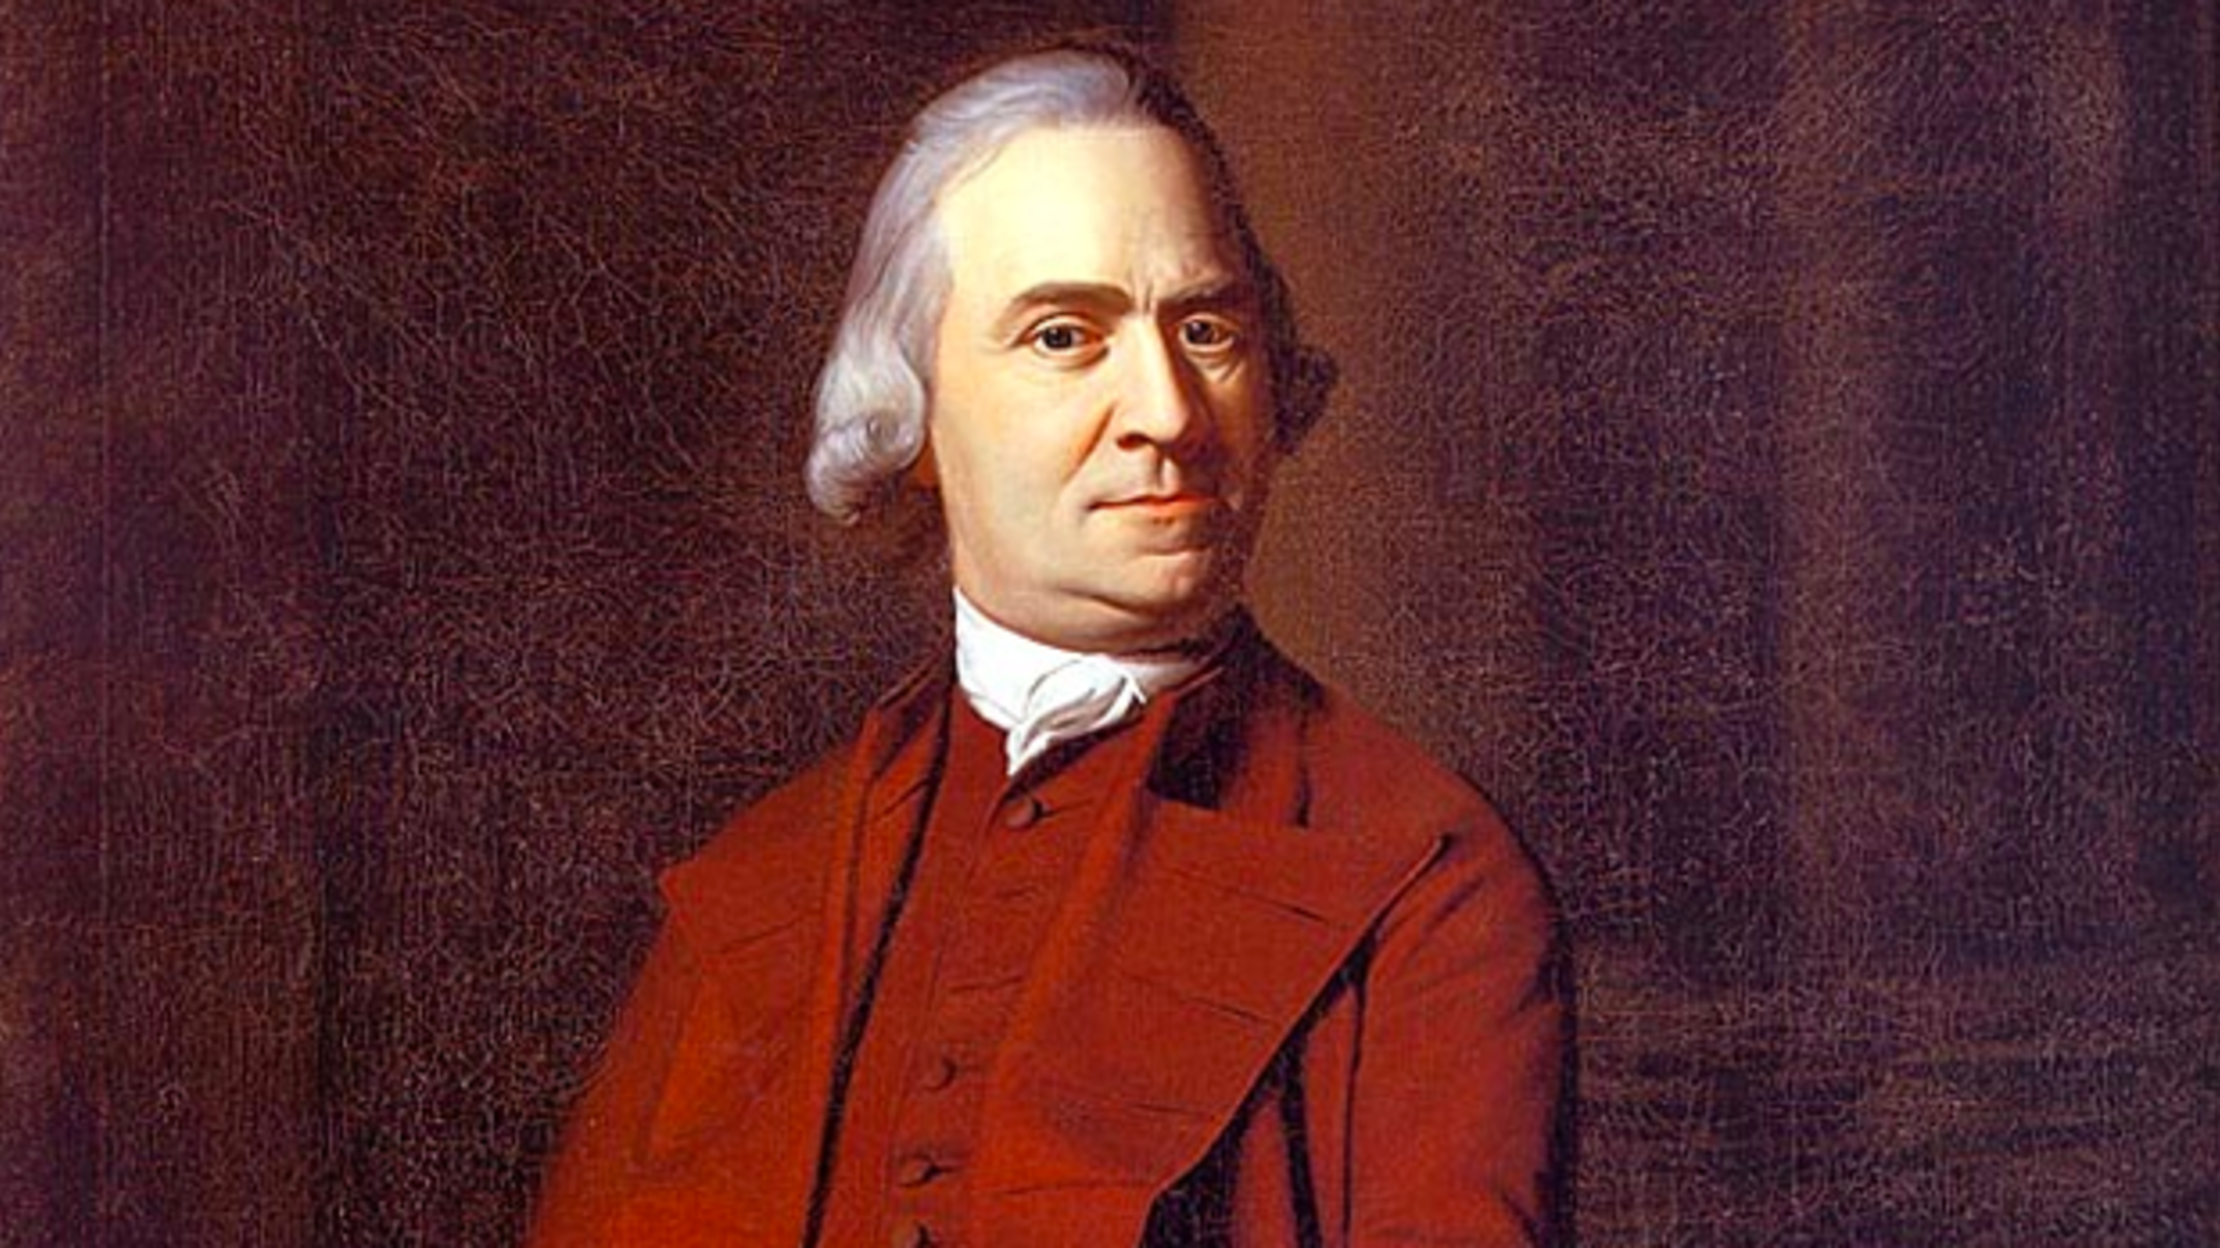 781f31c9465f1 11 Things You Probably Didn't Know About Sam Adams | Mental Floss